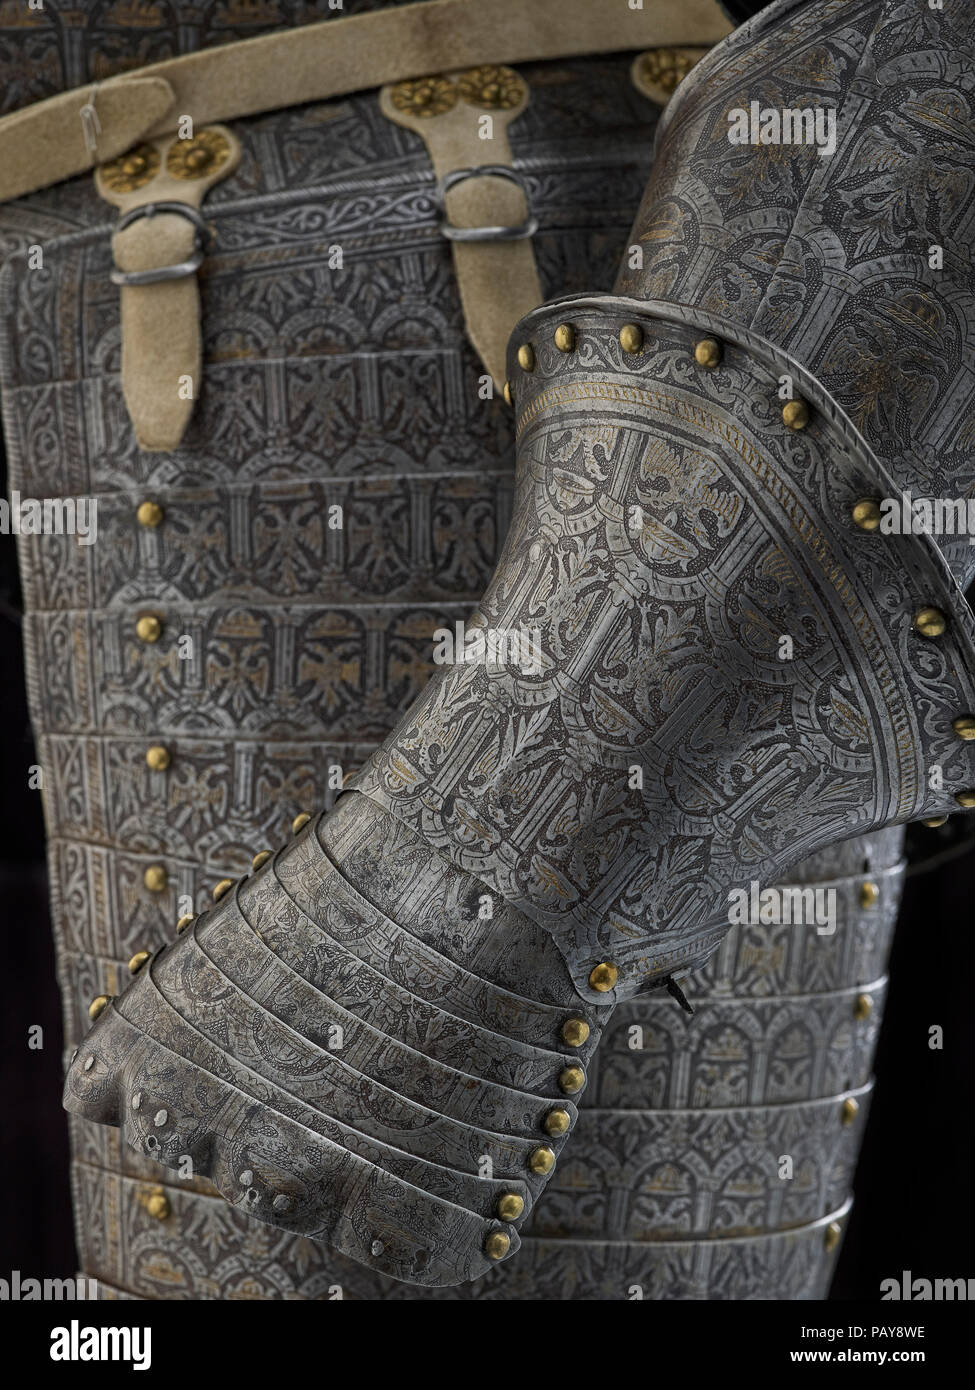 Demilance armour - Stock Image